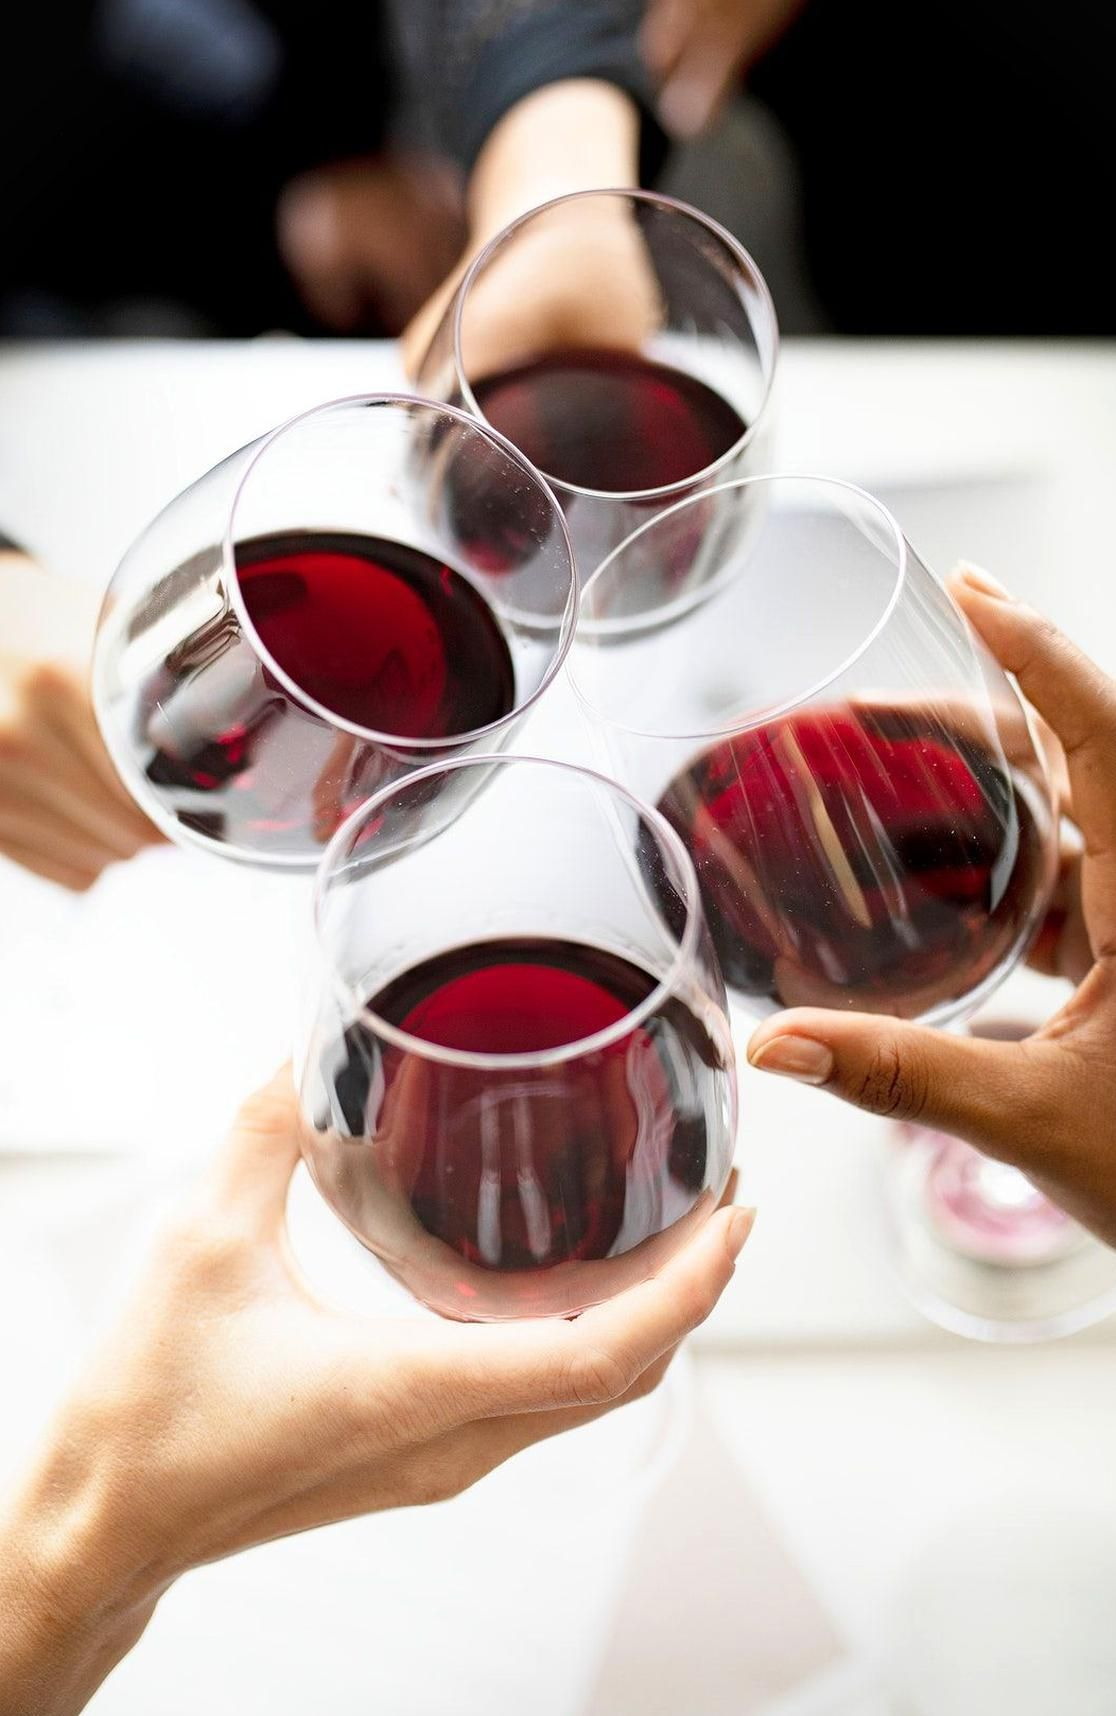 Business People Toasting Red Wine In The Office Free Image By Rawpixel Mckinsey In 2020 Wine Bottle Images Red Wine Wine